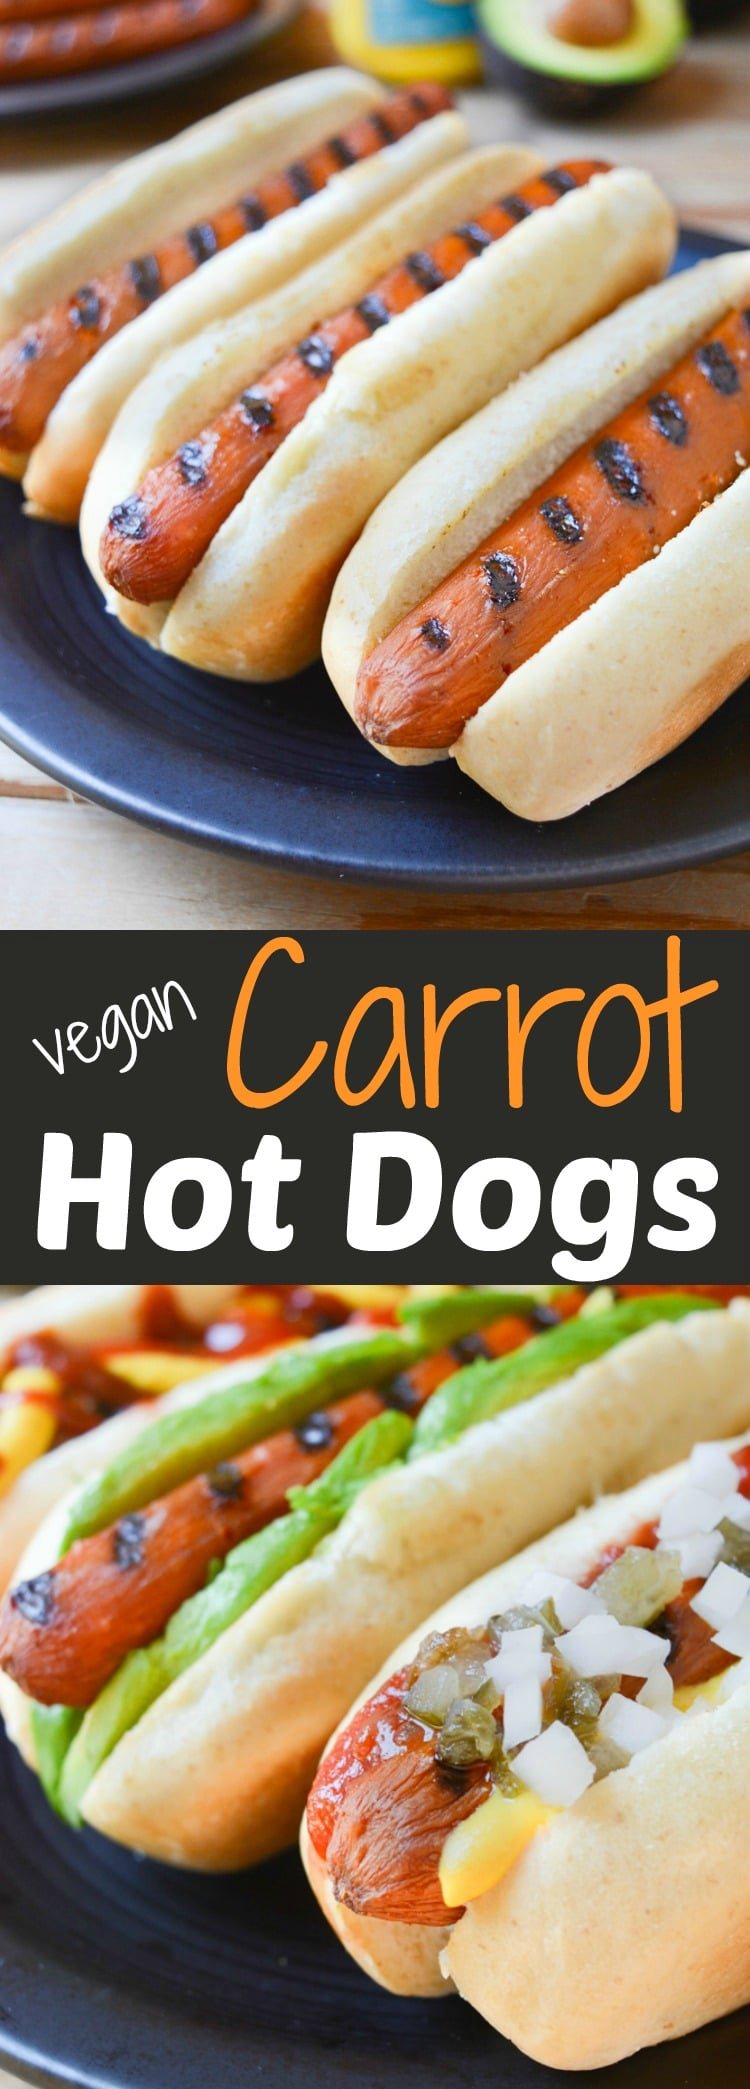 Carrot Hot Dogs can be topped any way you like. Plus, they're grillable which make them great for vegan summer BBQ's! Leave the unhealthy mock meats at the store and slide a carrot between those buns instead! Grilling, stovetop and oven directions included!